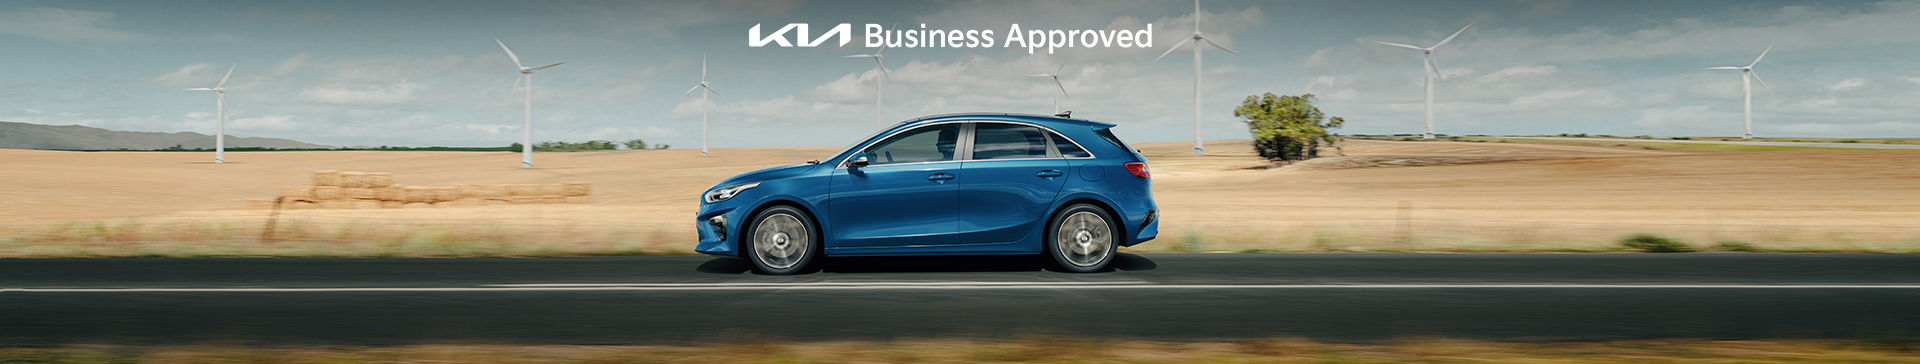 Kia Business Approved